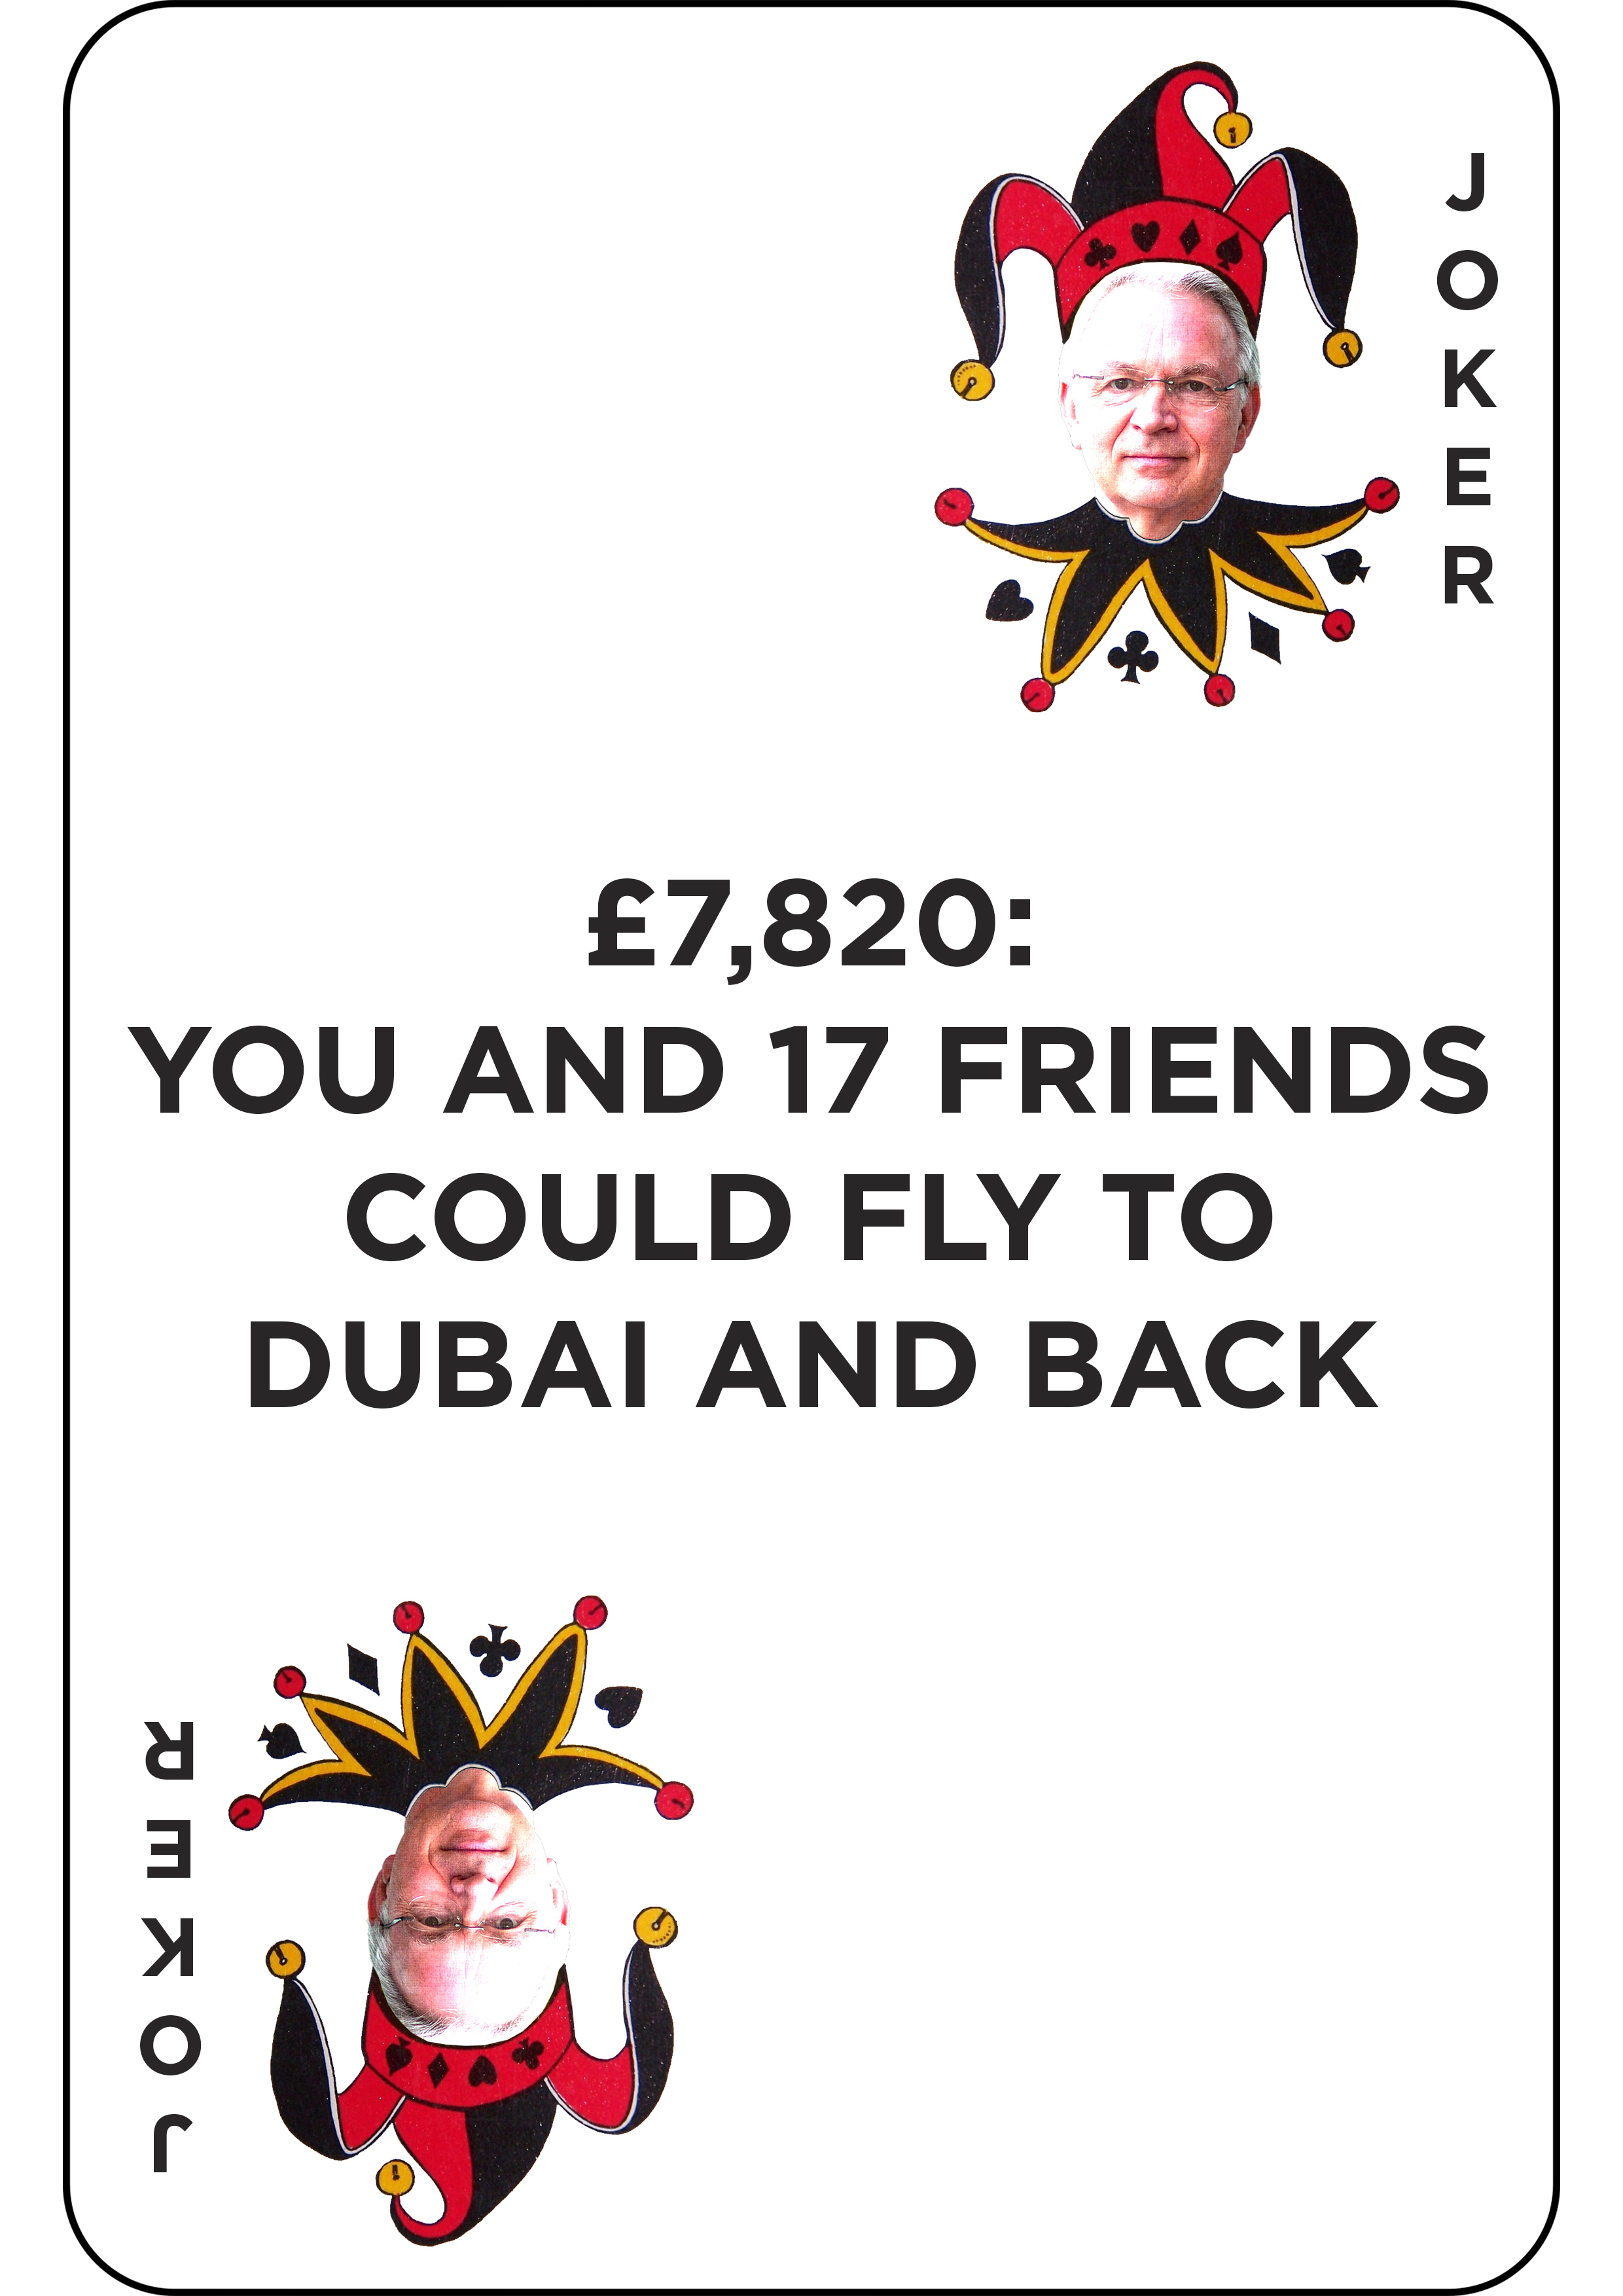 £7,820 - for you and 17 friends to fly to dubai and back